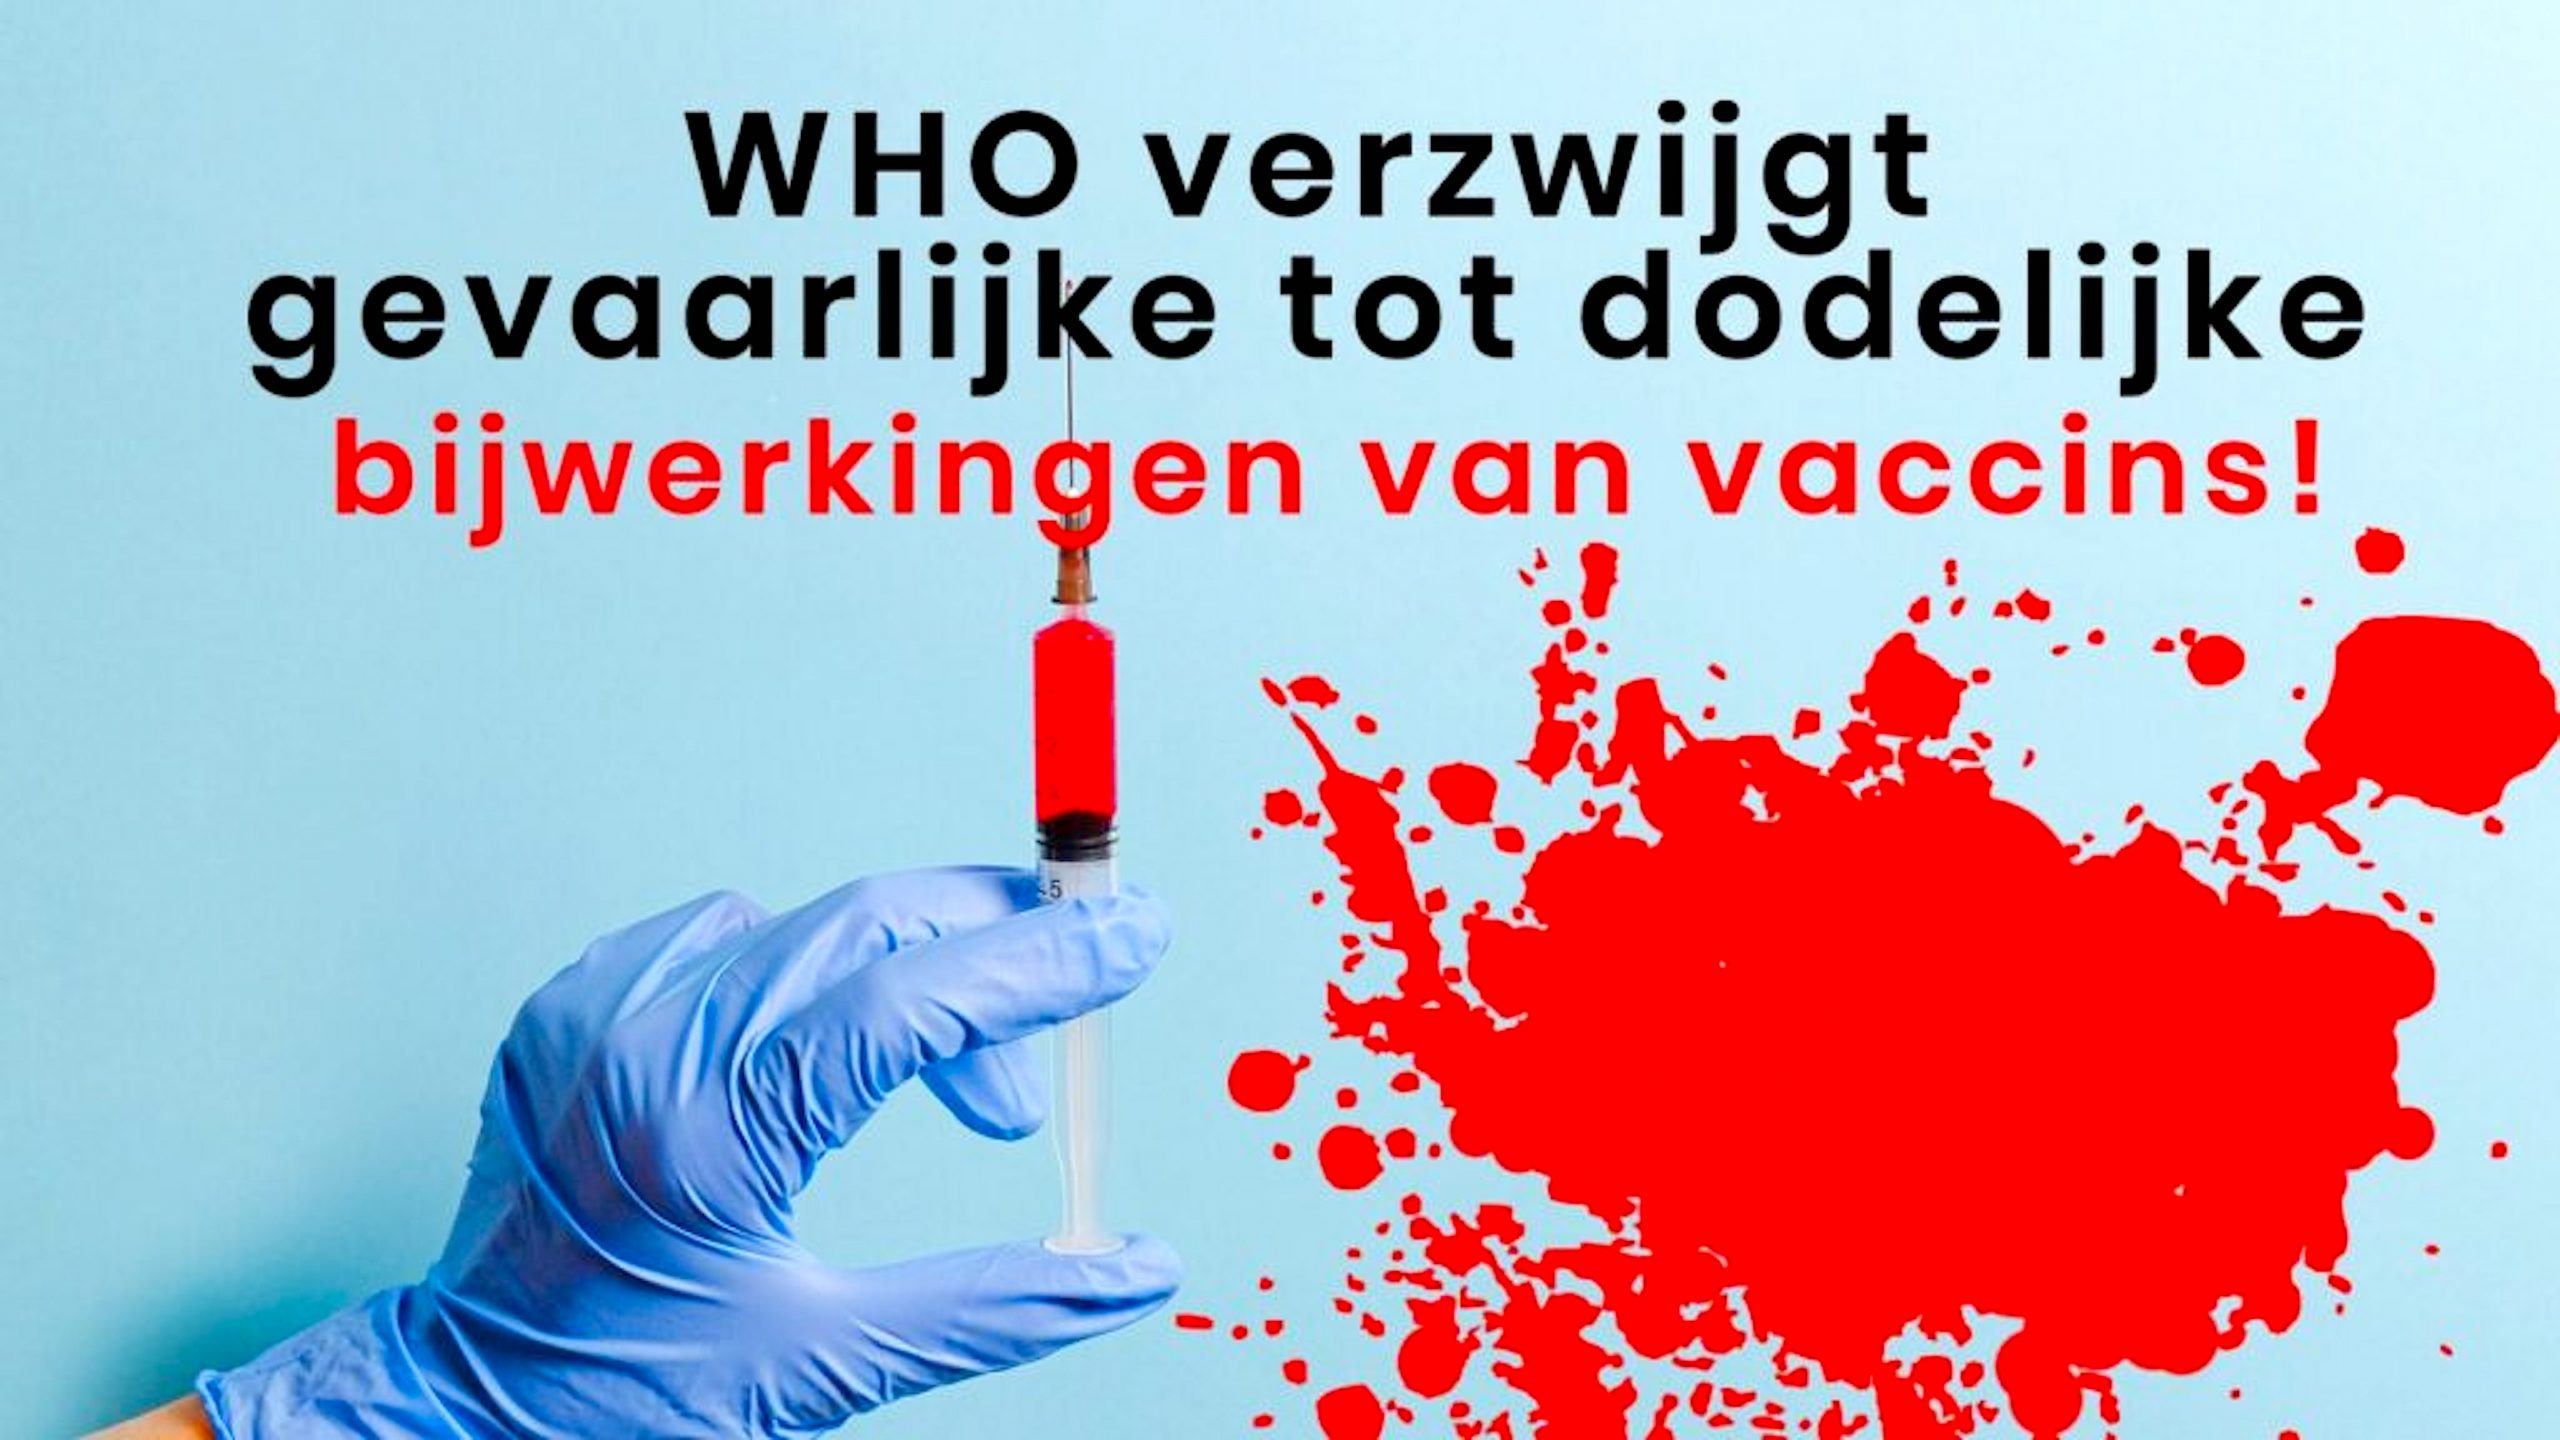 WHO is silent about dangerous and deadly vaccines (foto Eindtijdnieuws)